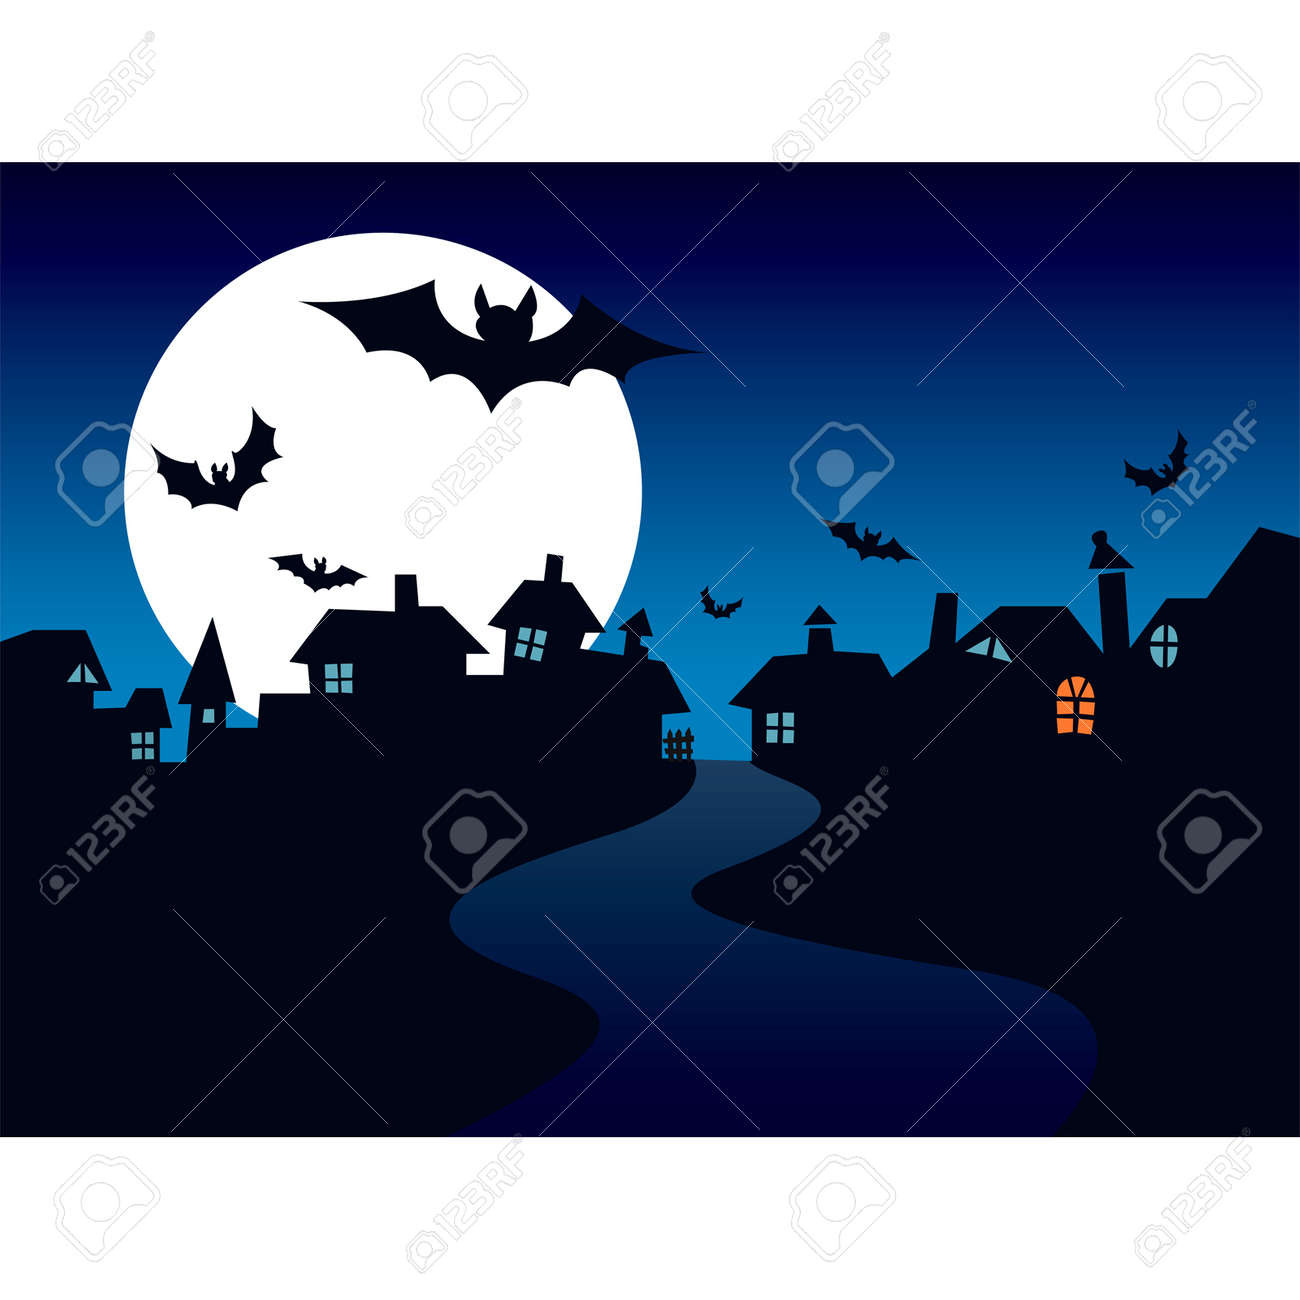 halloween town, vector royalty free cliparts, vectors, and stock